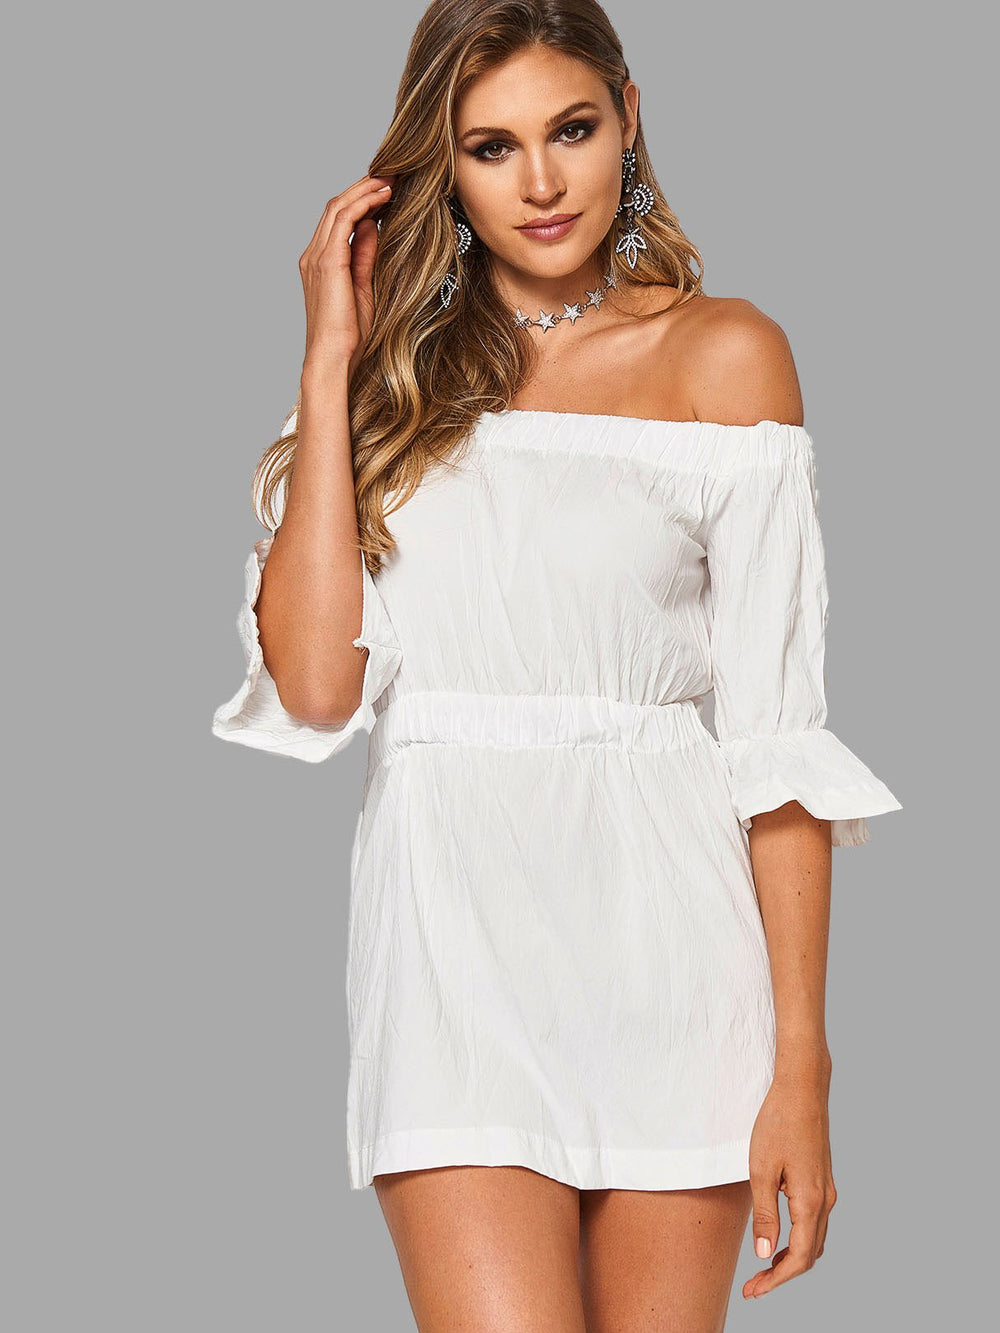 Off The Shoulder 3/4 Length Sleeve White Sexy Dresses